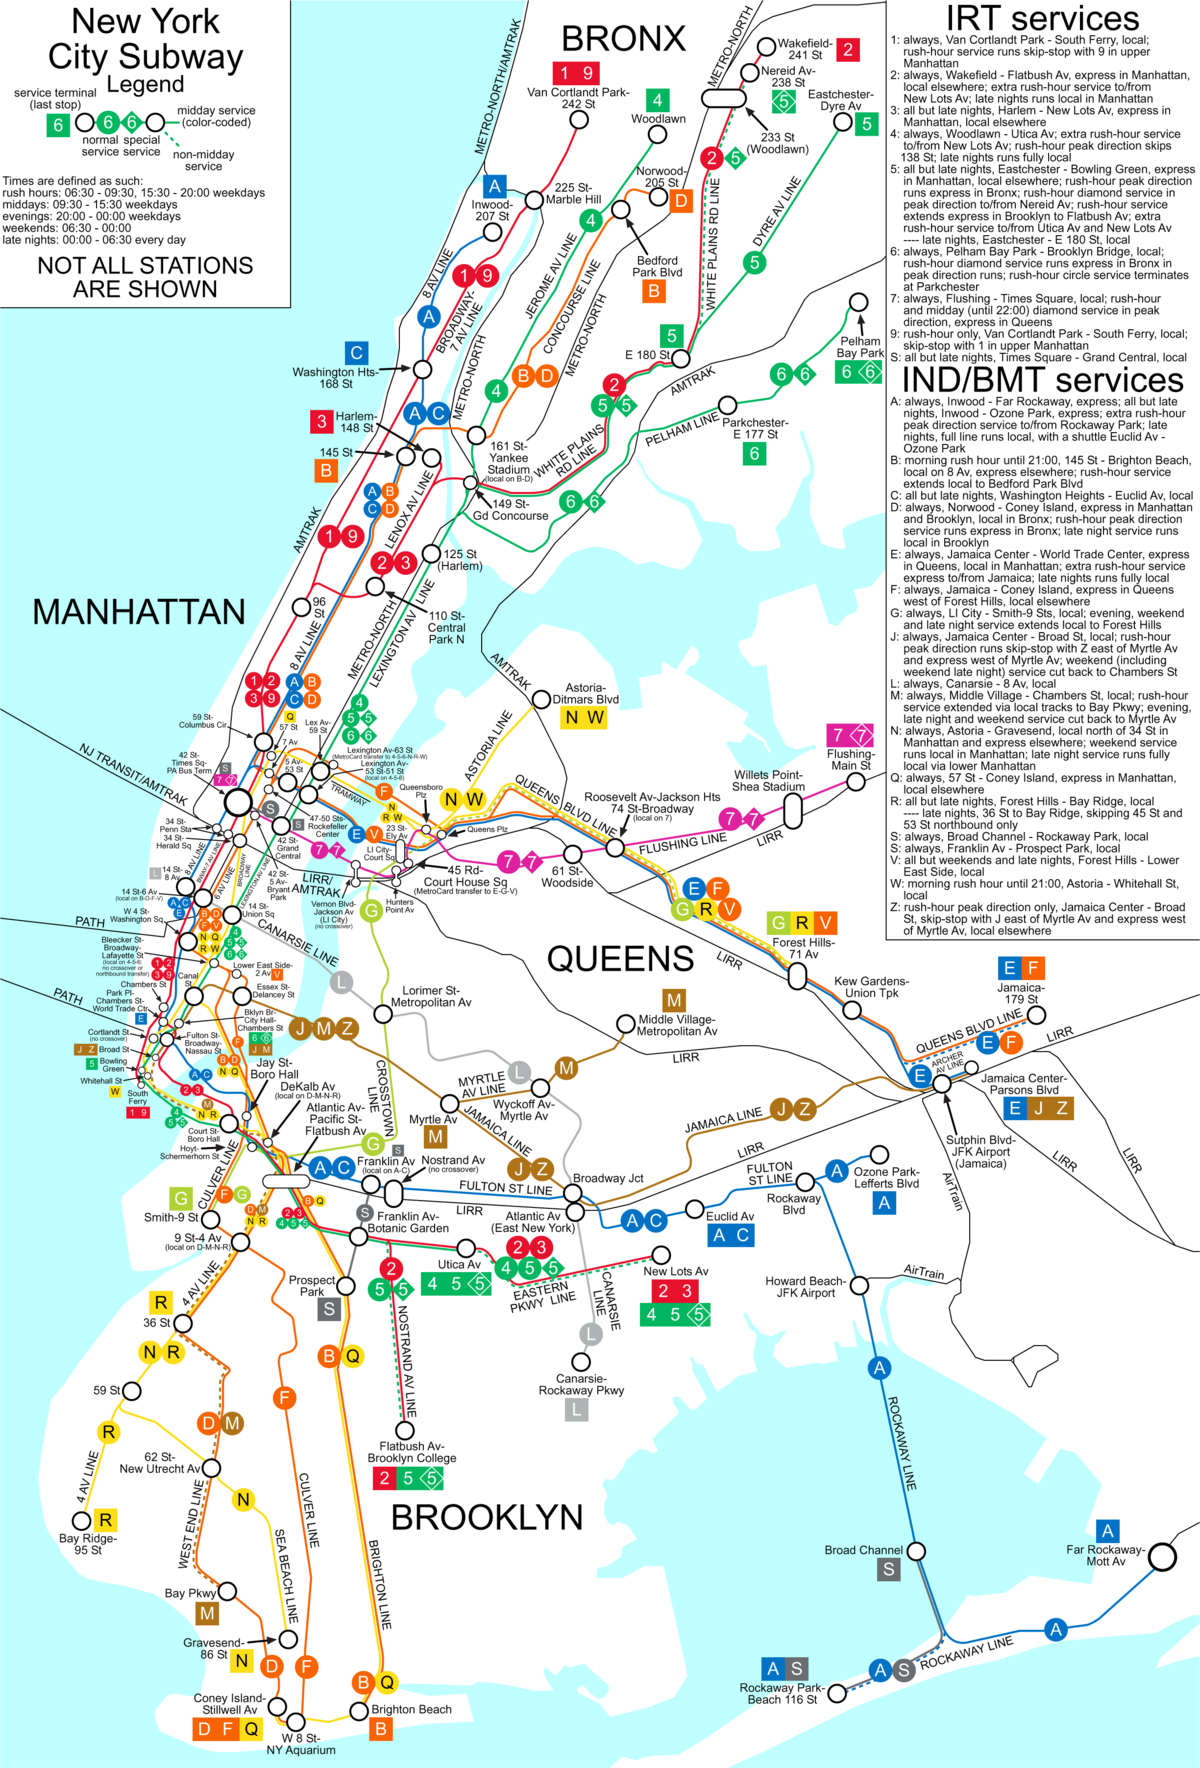 N Subway Map.New York City Subway N Service To Be Restored To Coney Island May 29